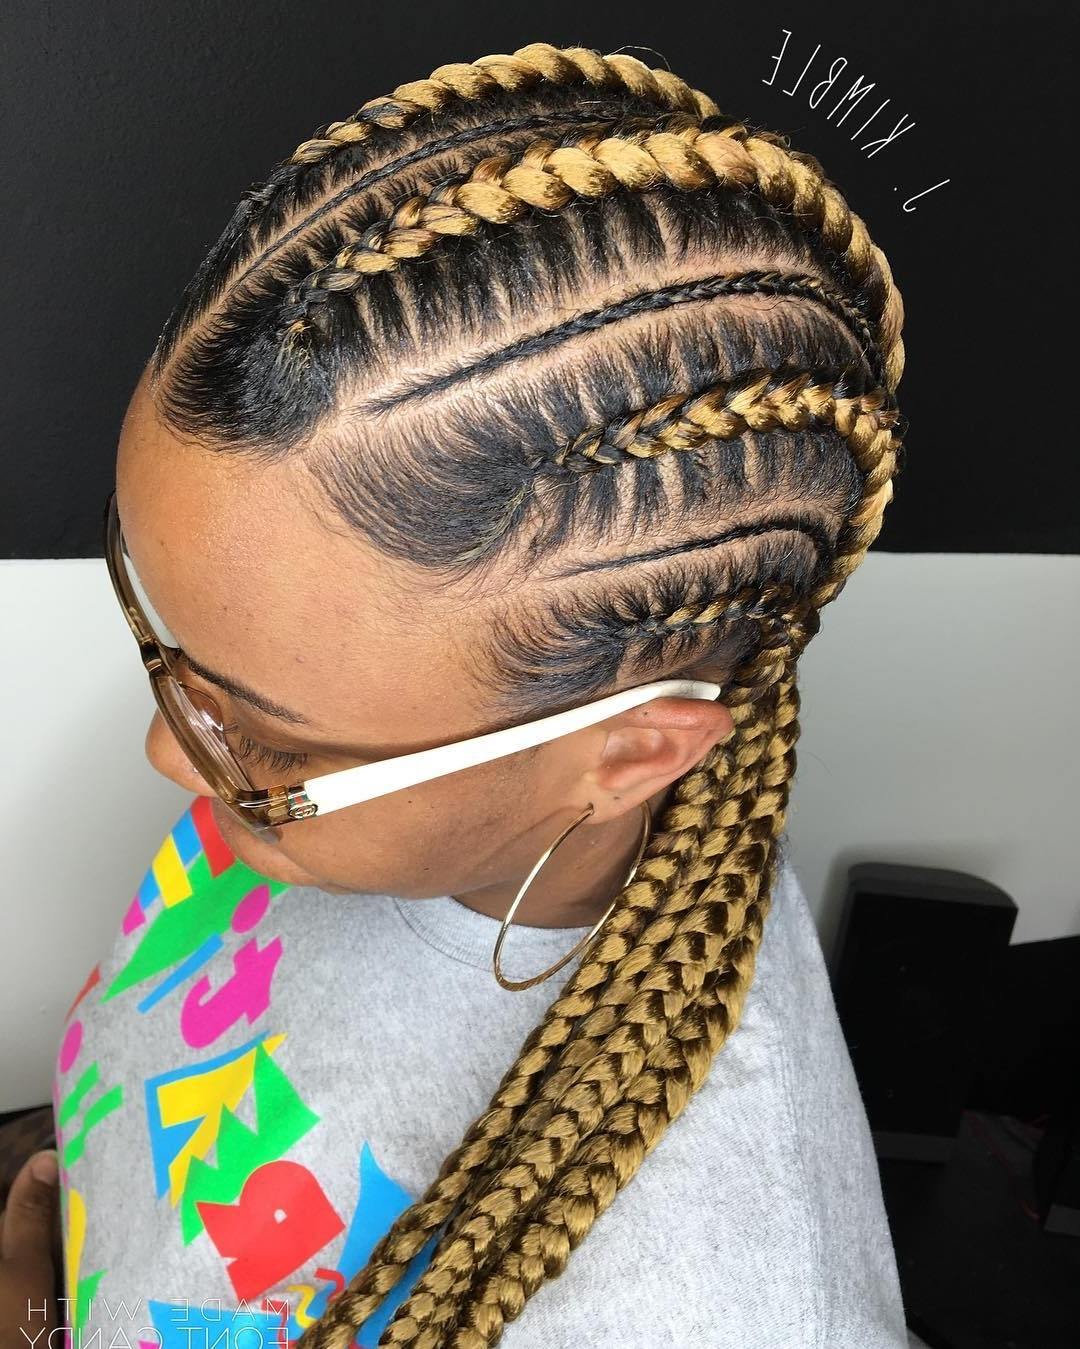 70 Best Black Braided Hairstyles That Turn Heads In 2018 For 2018 Braided Hairstyles For African American Hair (View 15 of 15)